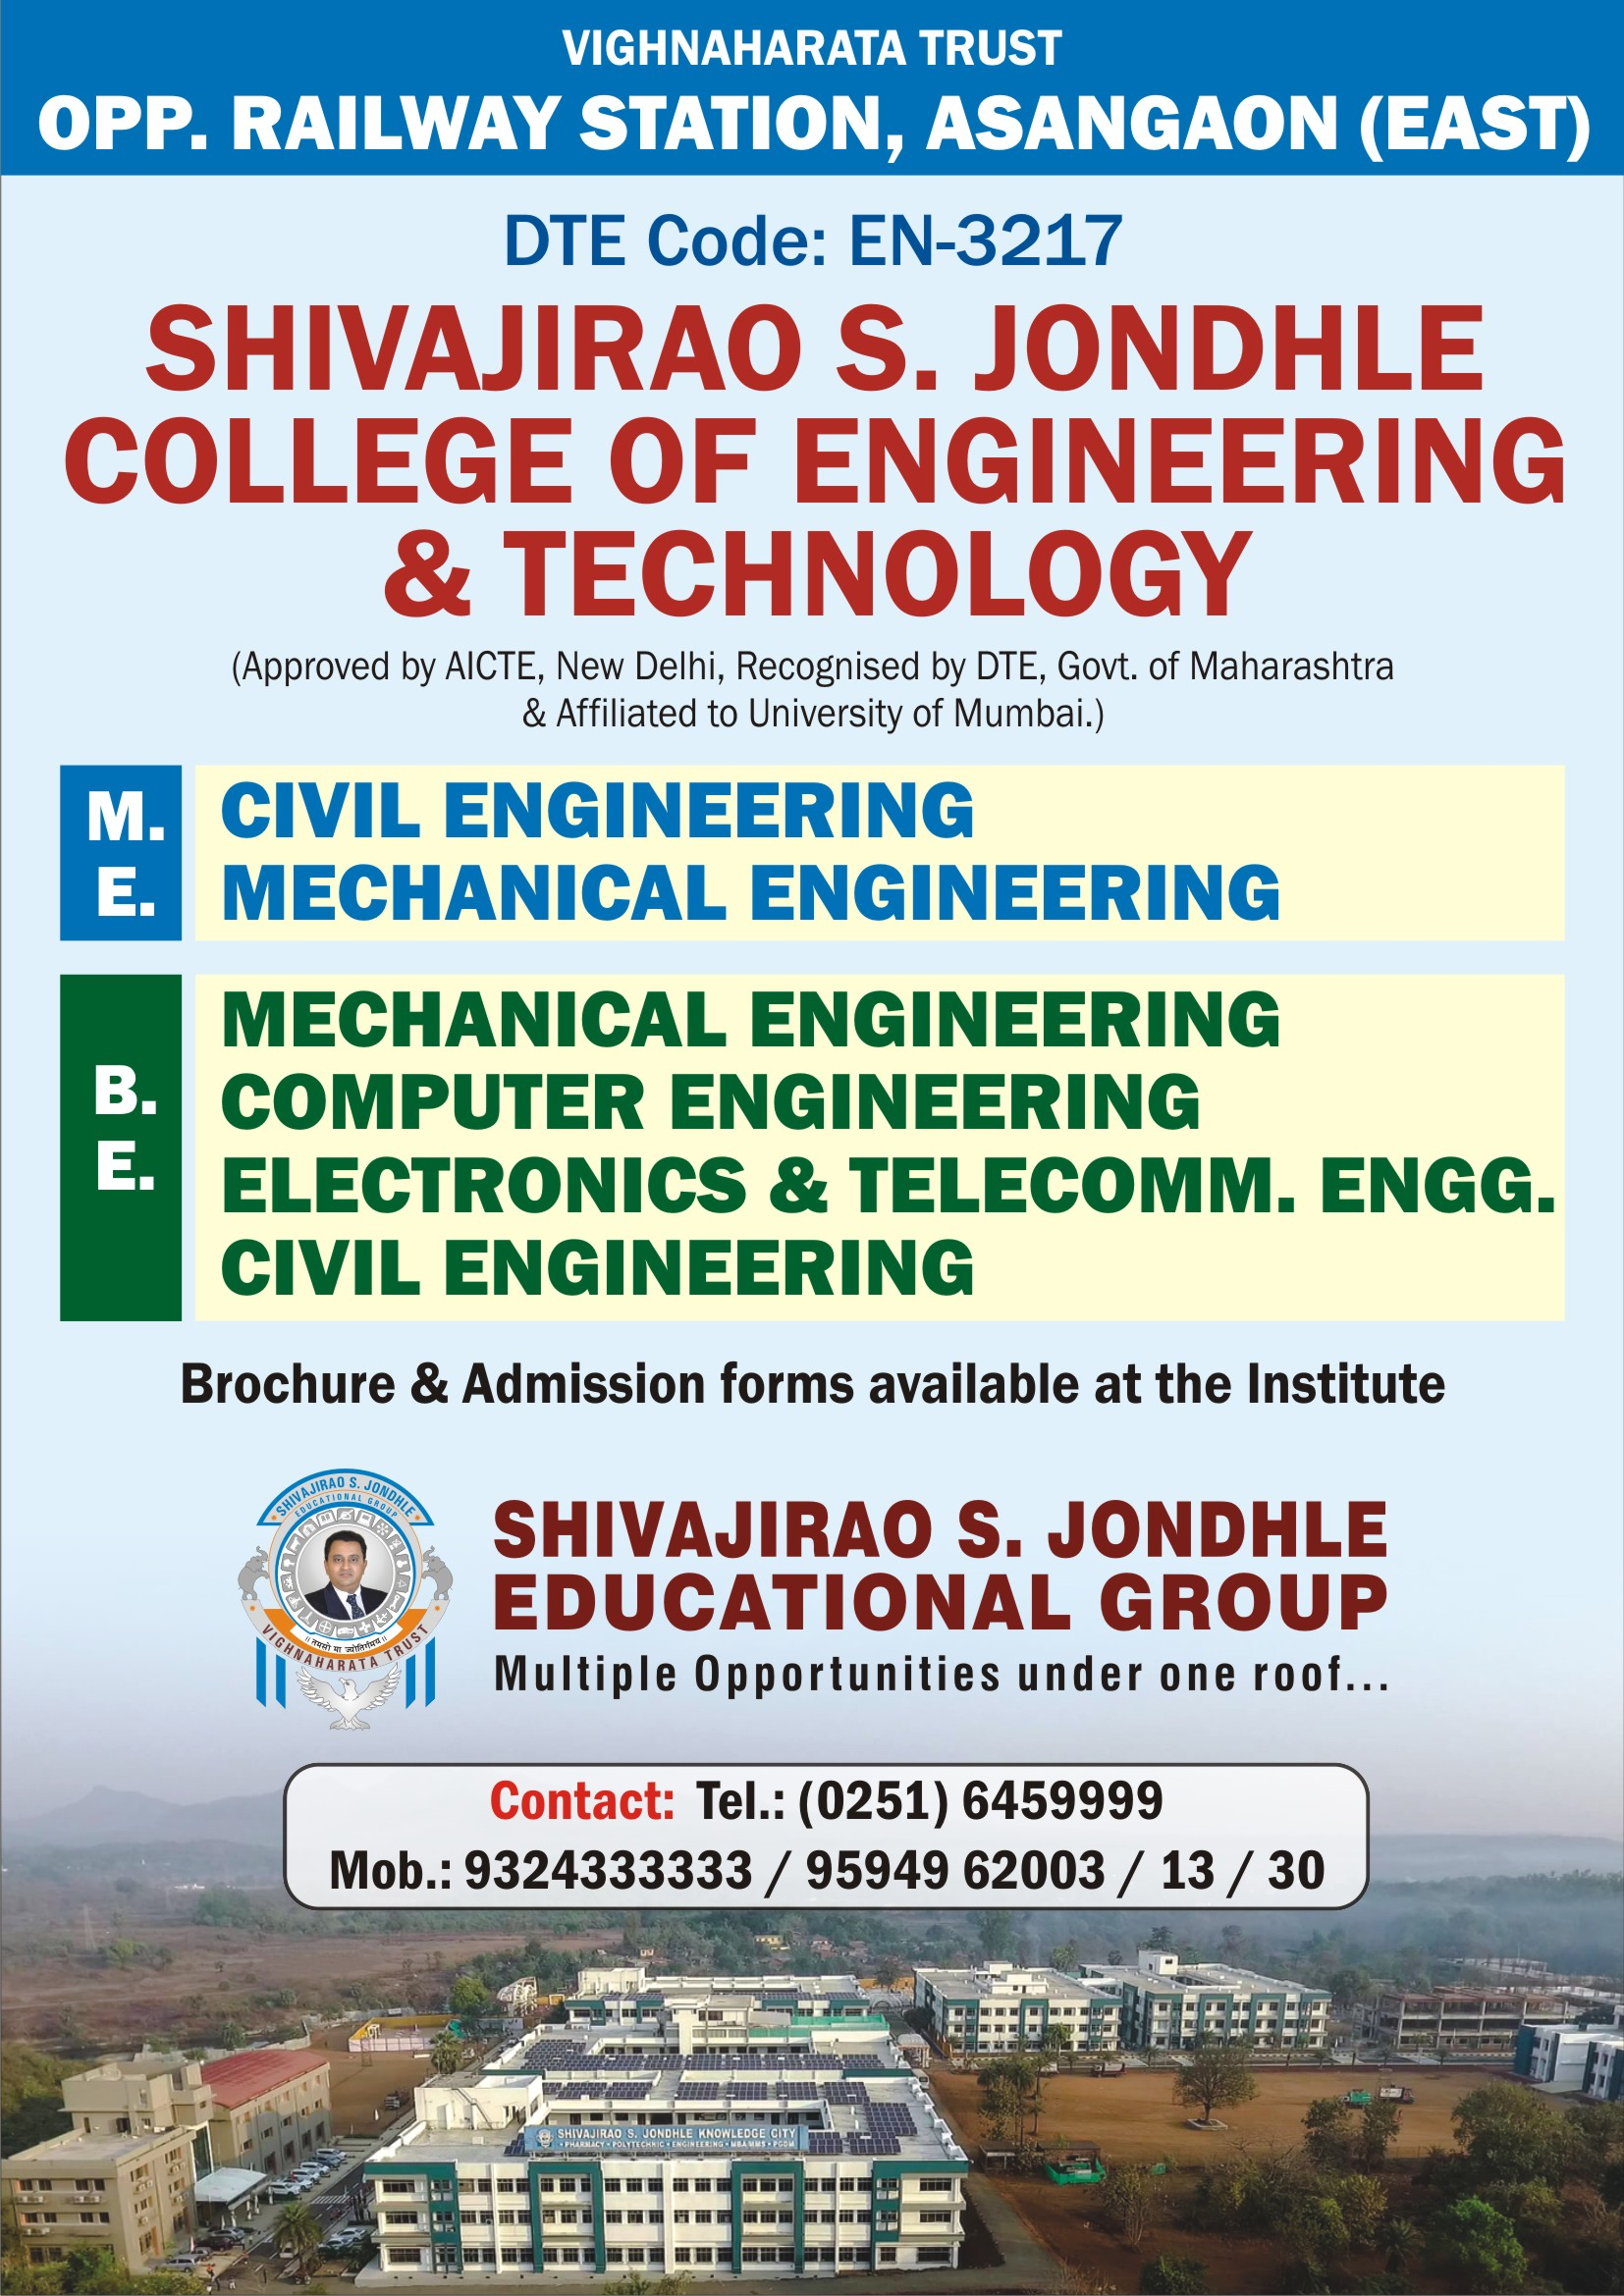 Shivajirao  S  Jondhle College of Engineering & Technology, Asangaon